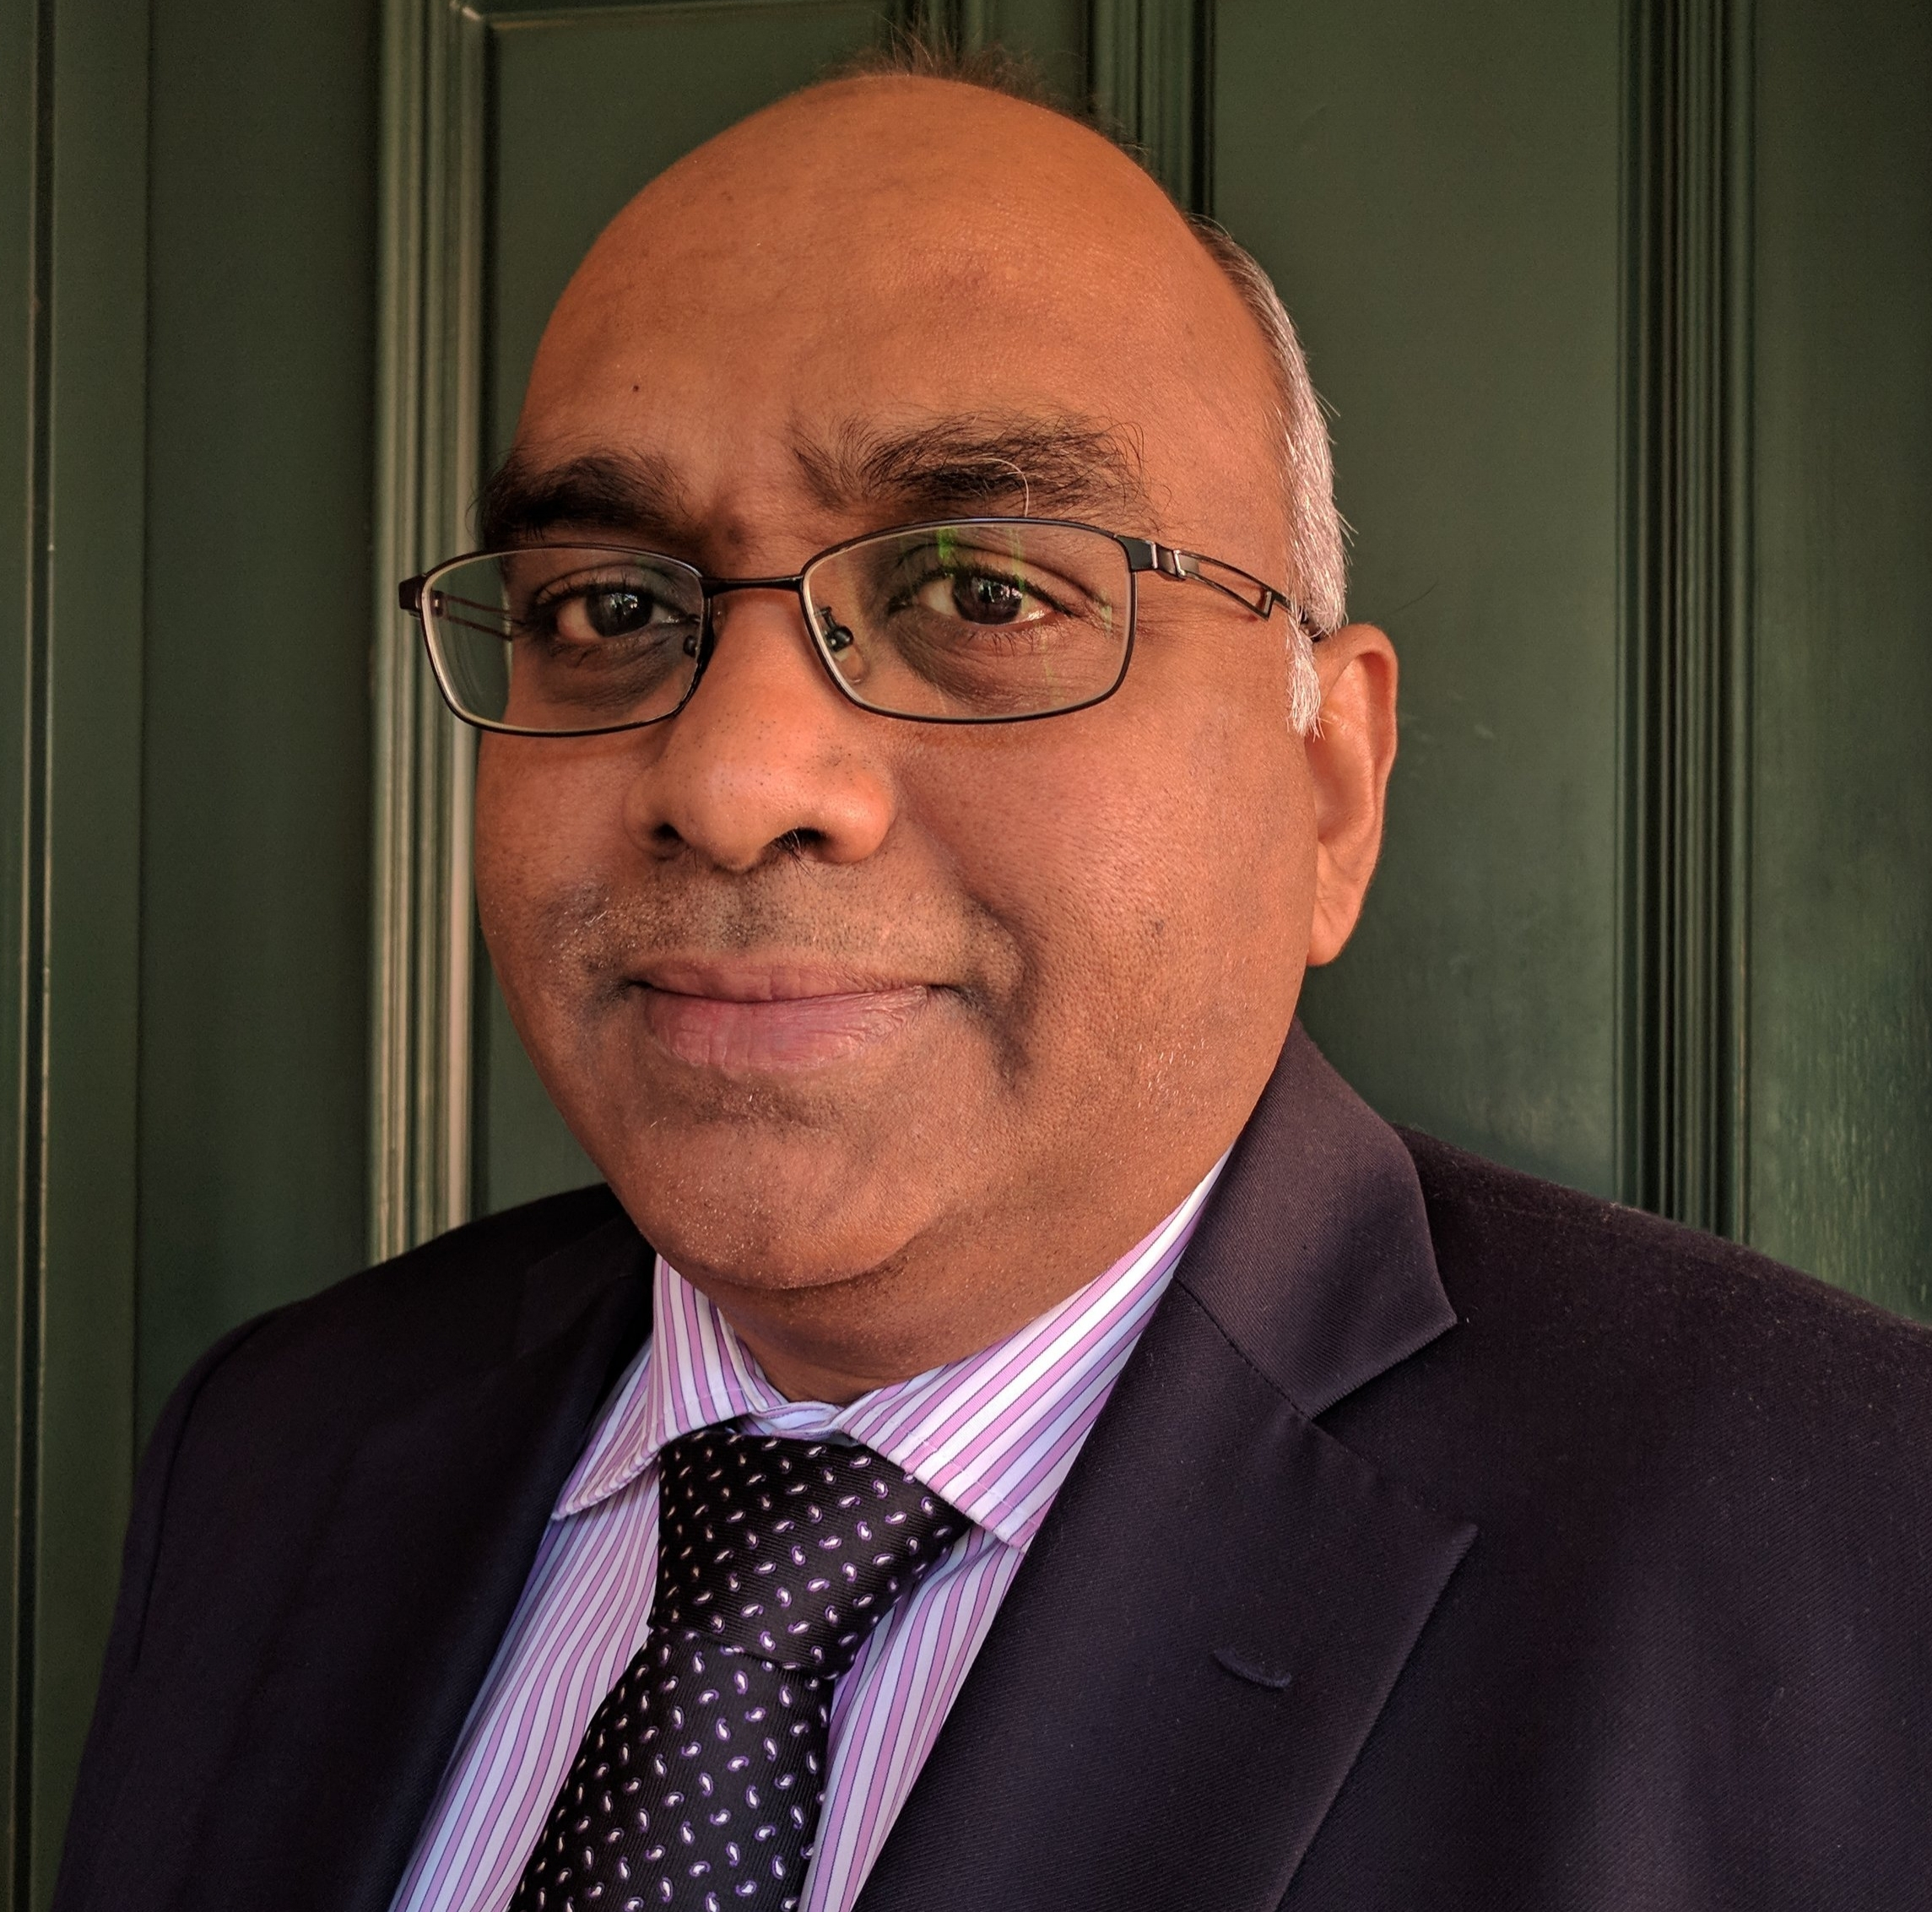 RAMANA MAHENDRAM - Ramana is a Senior Analyst at the National Australia Bank (NAB), where he is directly responsible for the management of a loan portfolio which includes institutional clients listed on the ASX 50 (Top 50 companies in Australia) and which has over AU$500 million in funded loans. He migrated to Sydney, Australia in 2001 and subsequently joined the Westpac Banking Corporation where he held roles in retail banking, commercial credit and risk management. His most notable career experiences include managing clients during the Asian Financial Crisis in 1997 and subsequently the Global Financial Crisis in 2008, where he was commended for his ability to negotiate as well as seek workout solutions for distressed bank assets.